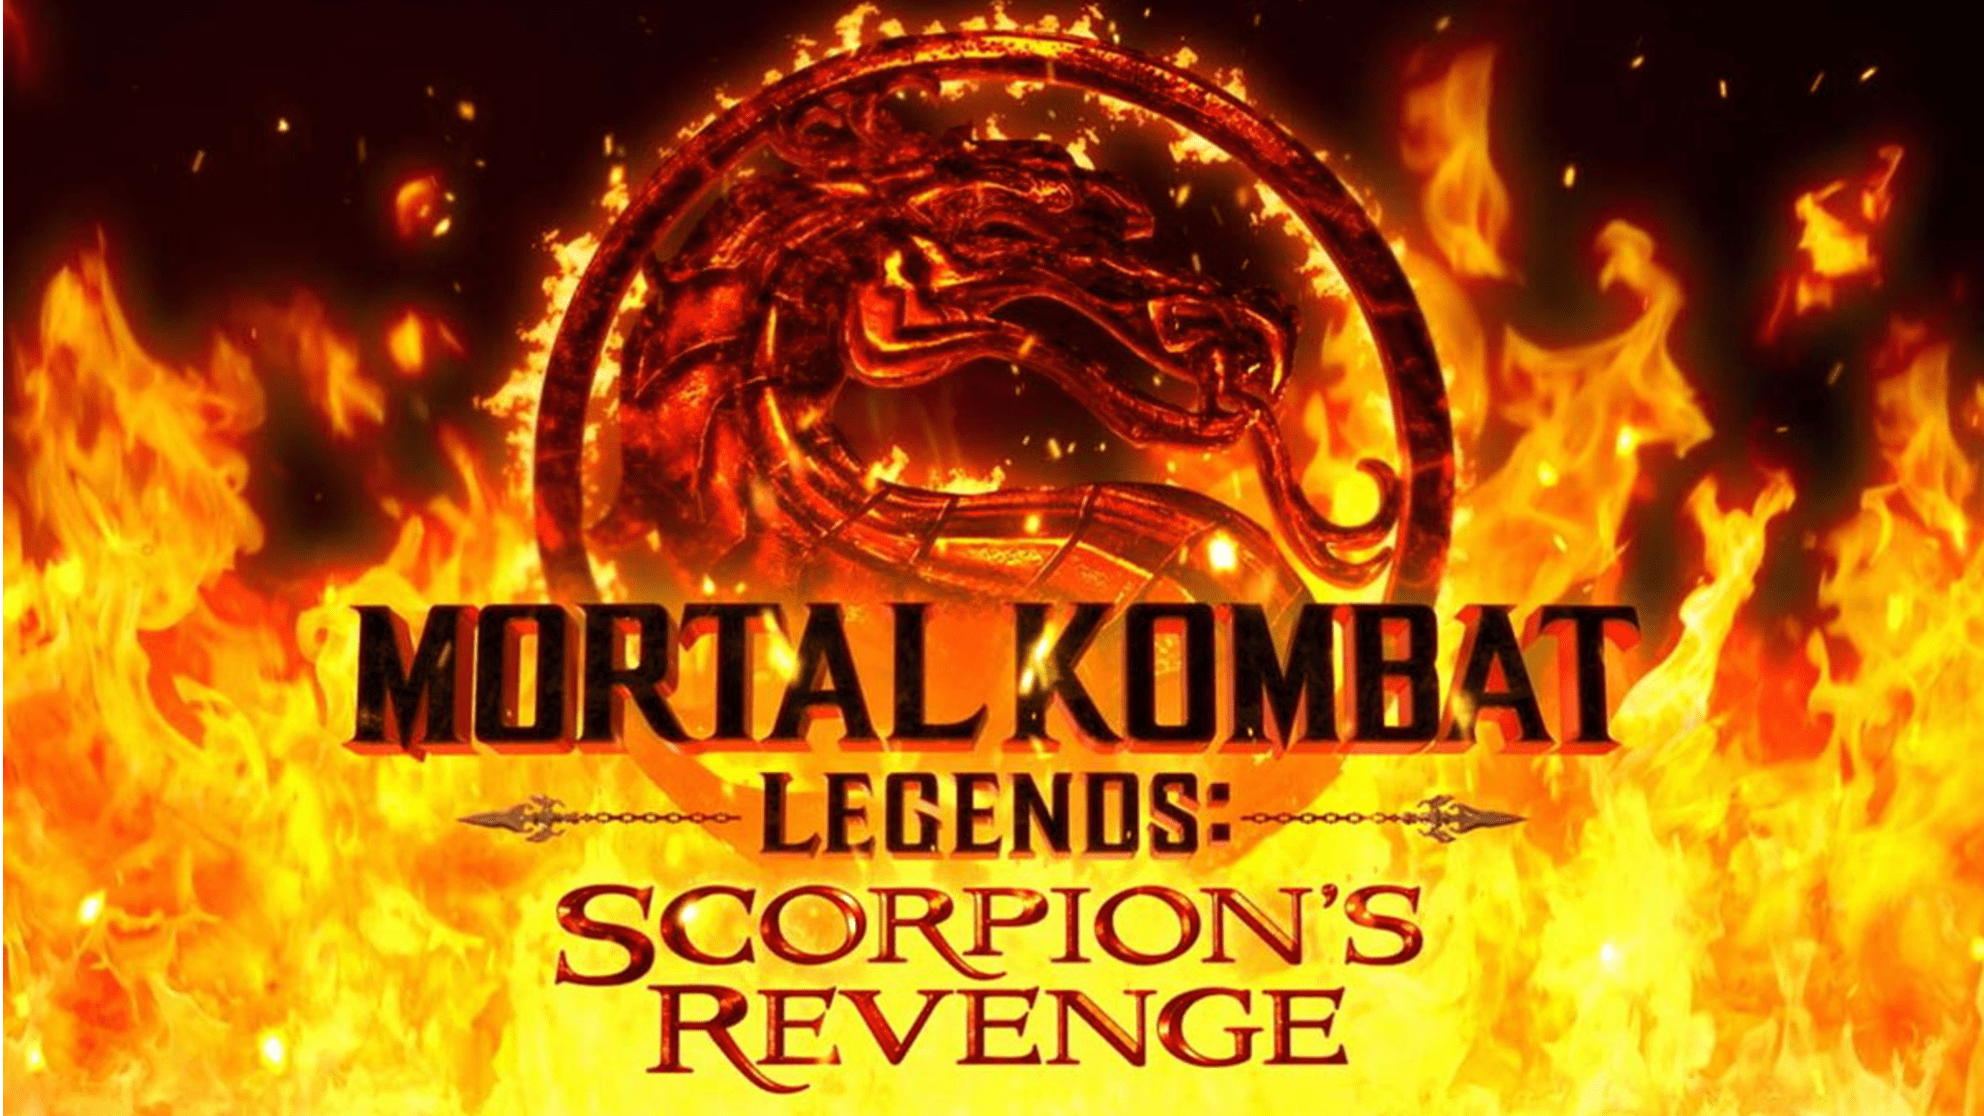 New Mortal Kombat Legends animated movie will be released in June